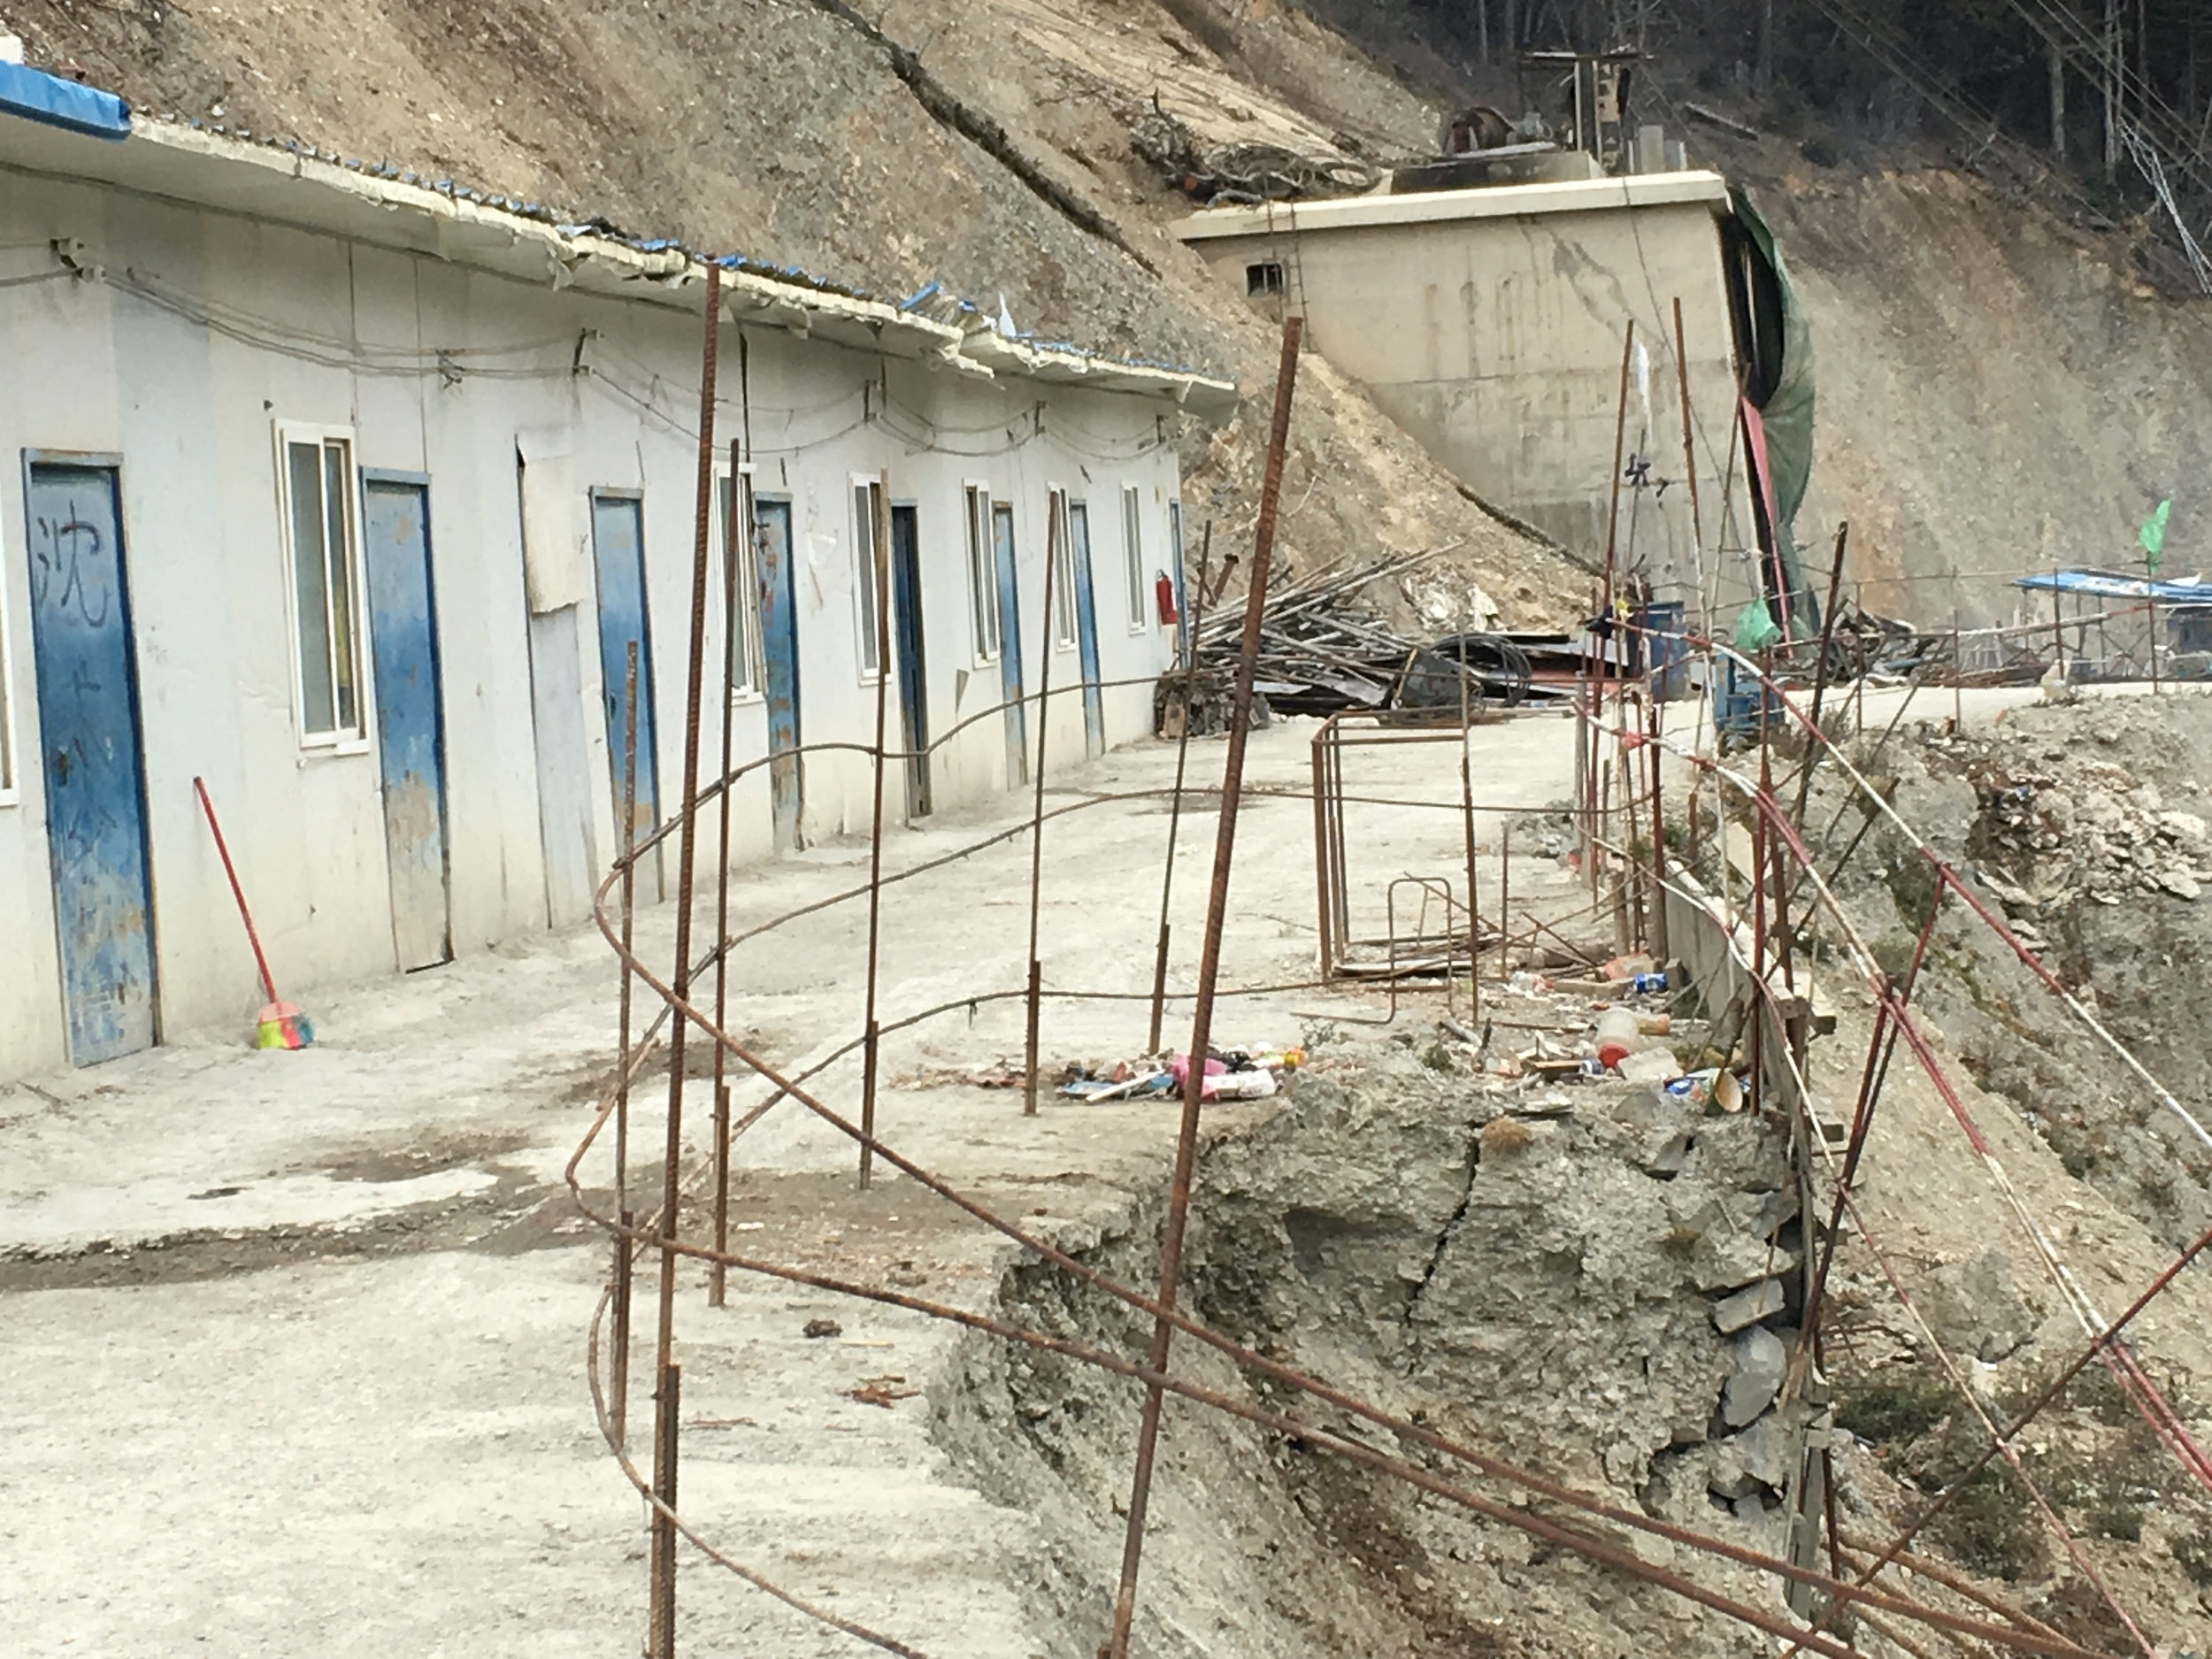 Workers' living quarters at the construction site